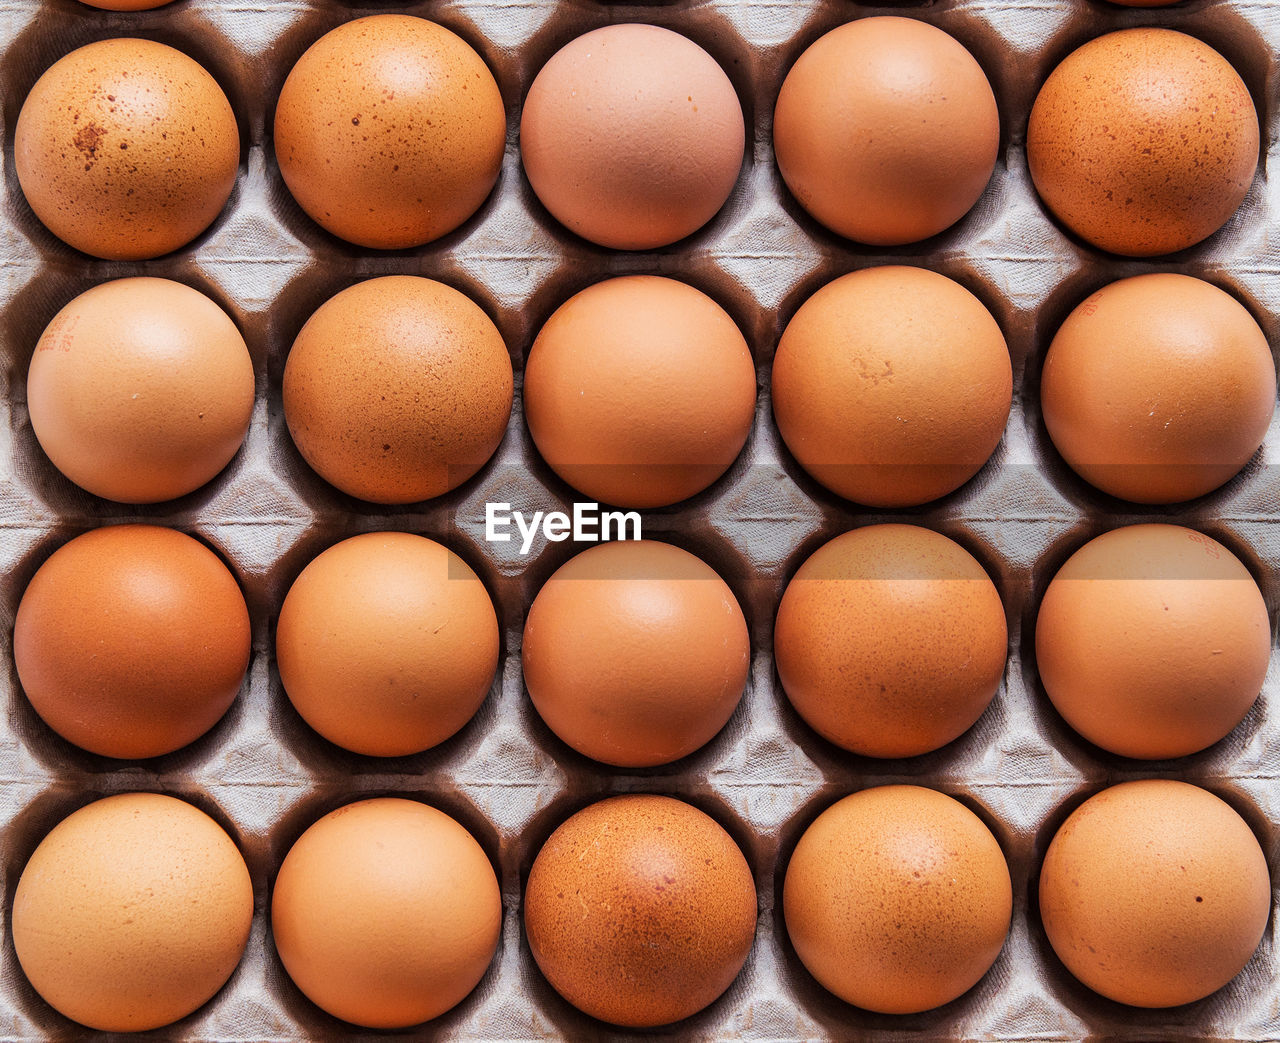 egg, wellbeing, food and drink, freshness, large group of objects, healthy eating, in a row, food, arrangement, directly above, no people, brown, full frame, side by side, egg carton, backgrounds, raw food, indoors, still life, order, carton, breakfast